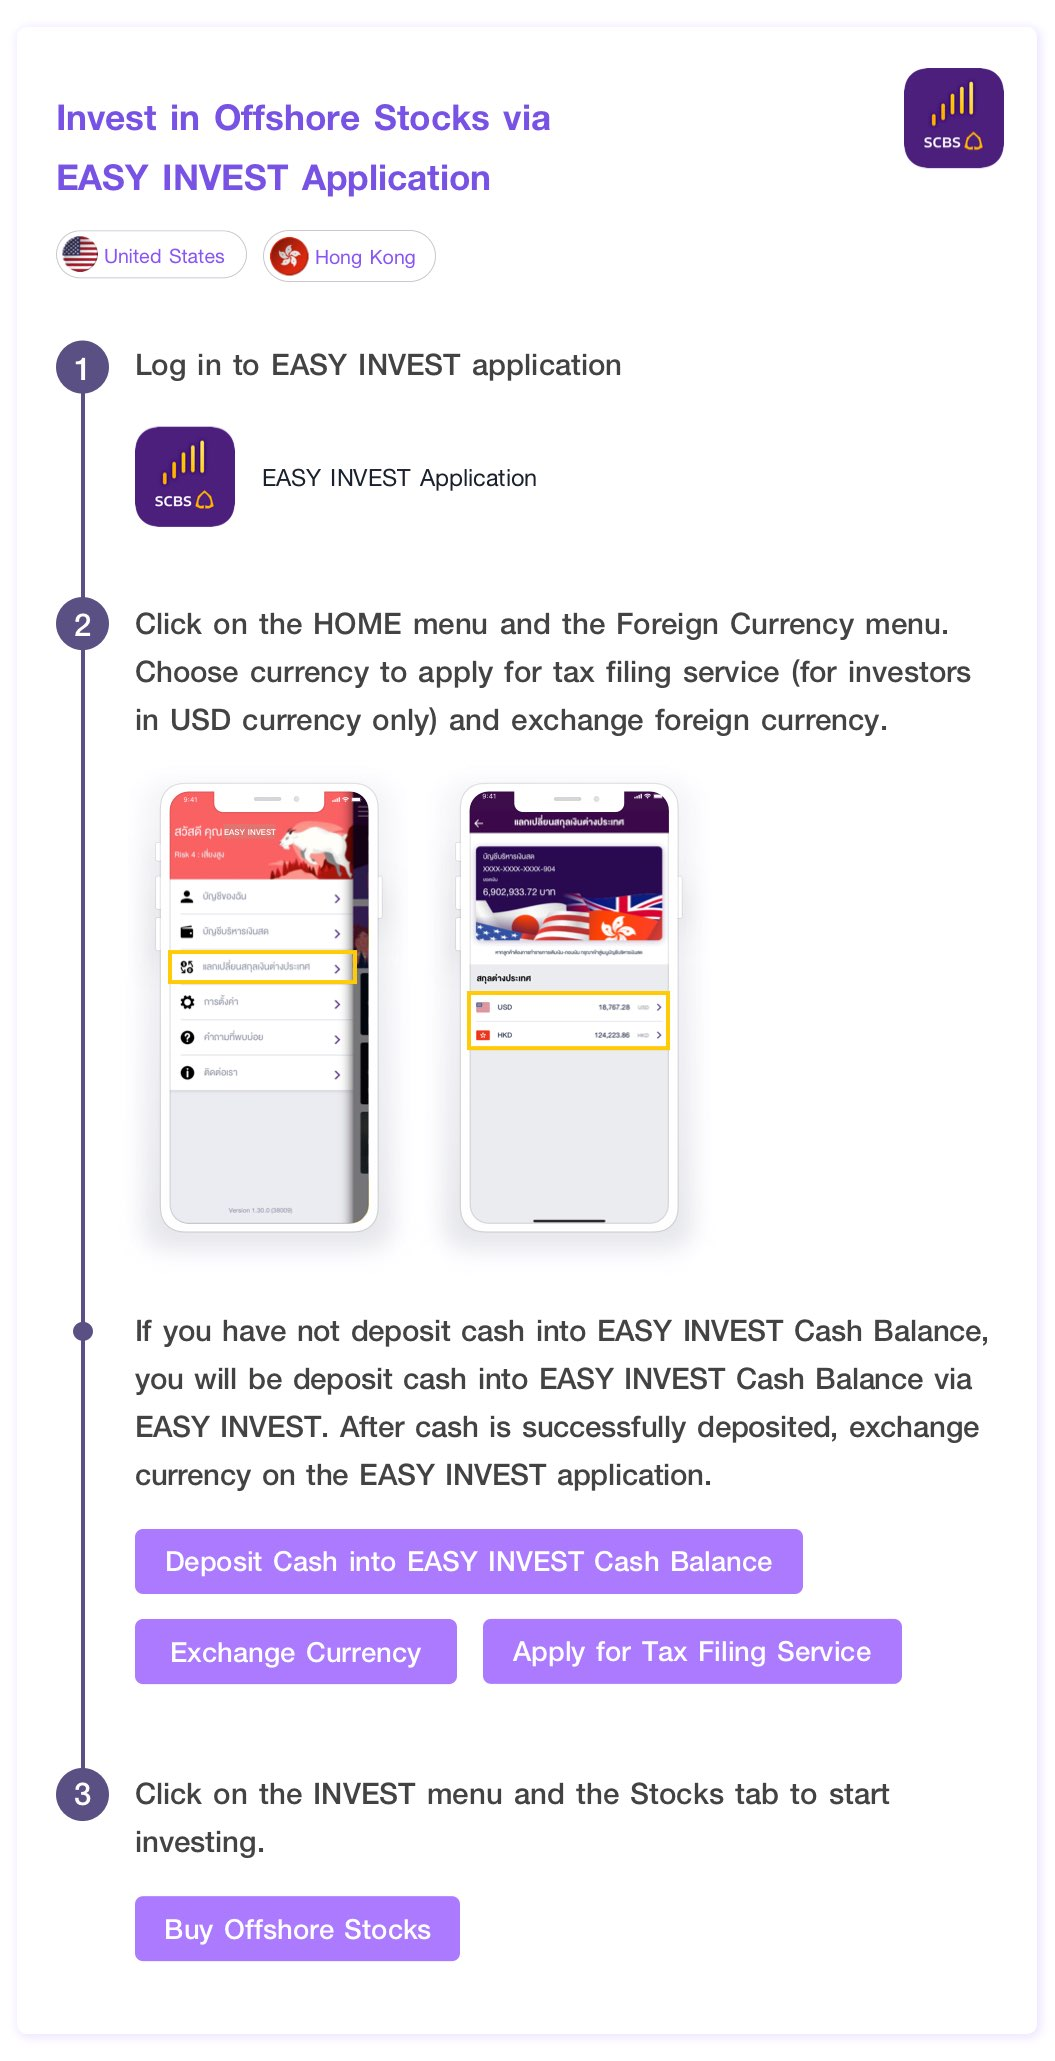 Invest in United States, Hong Kong Stocks via EASY INVEST Application. Log in to EASY INVEST application. Click on the MORE menu and the Foreign Currency menu. Choose currency to apply for tax filing service (for investors in USD currency only) and exchange foreign currency.